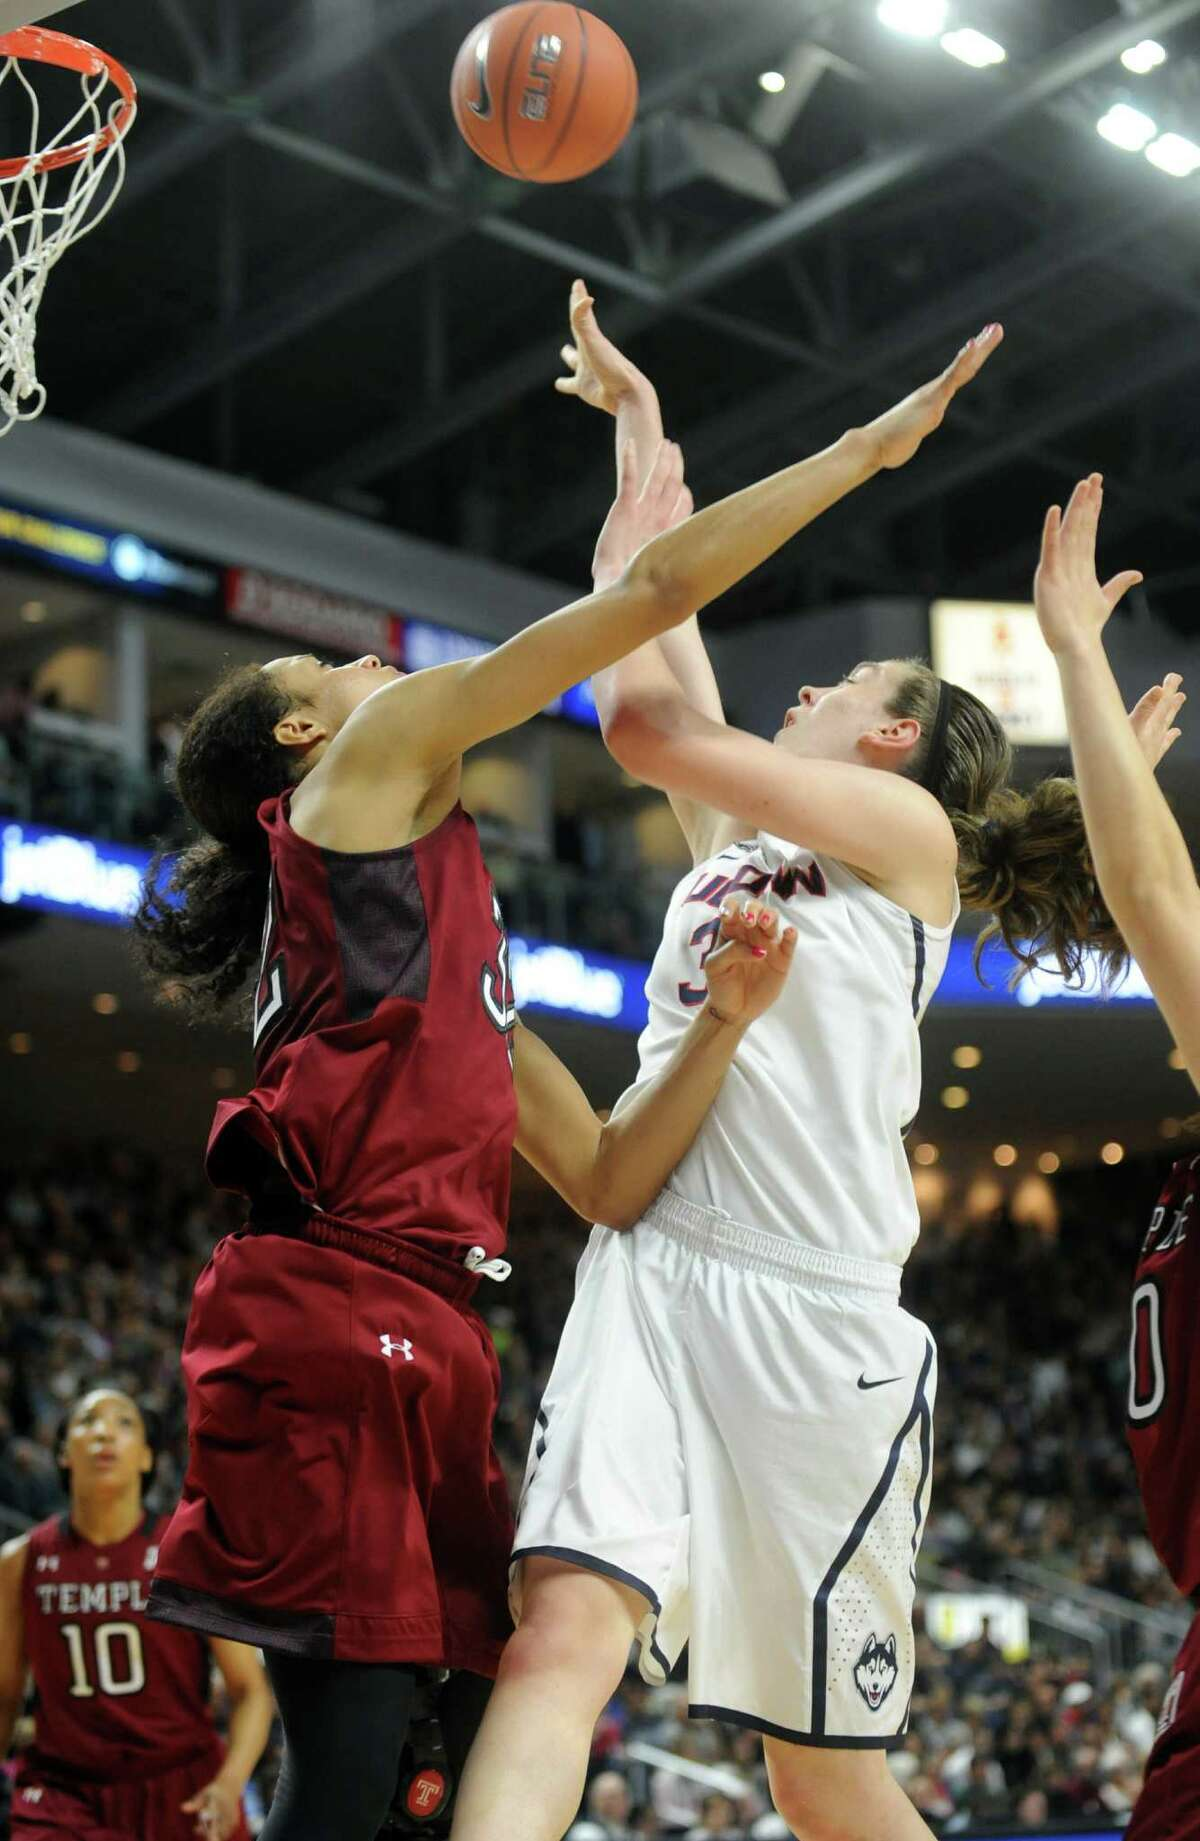 University of Connecticut's Breanna Stewart puts up the ball as Temple's Natasha Thames, left, and Meghan Roxas defend during their game Saturday, Jan. 11, 2014 at the Webster Bank Arena in Bridgeport, Conn.